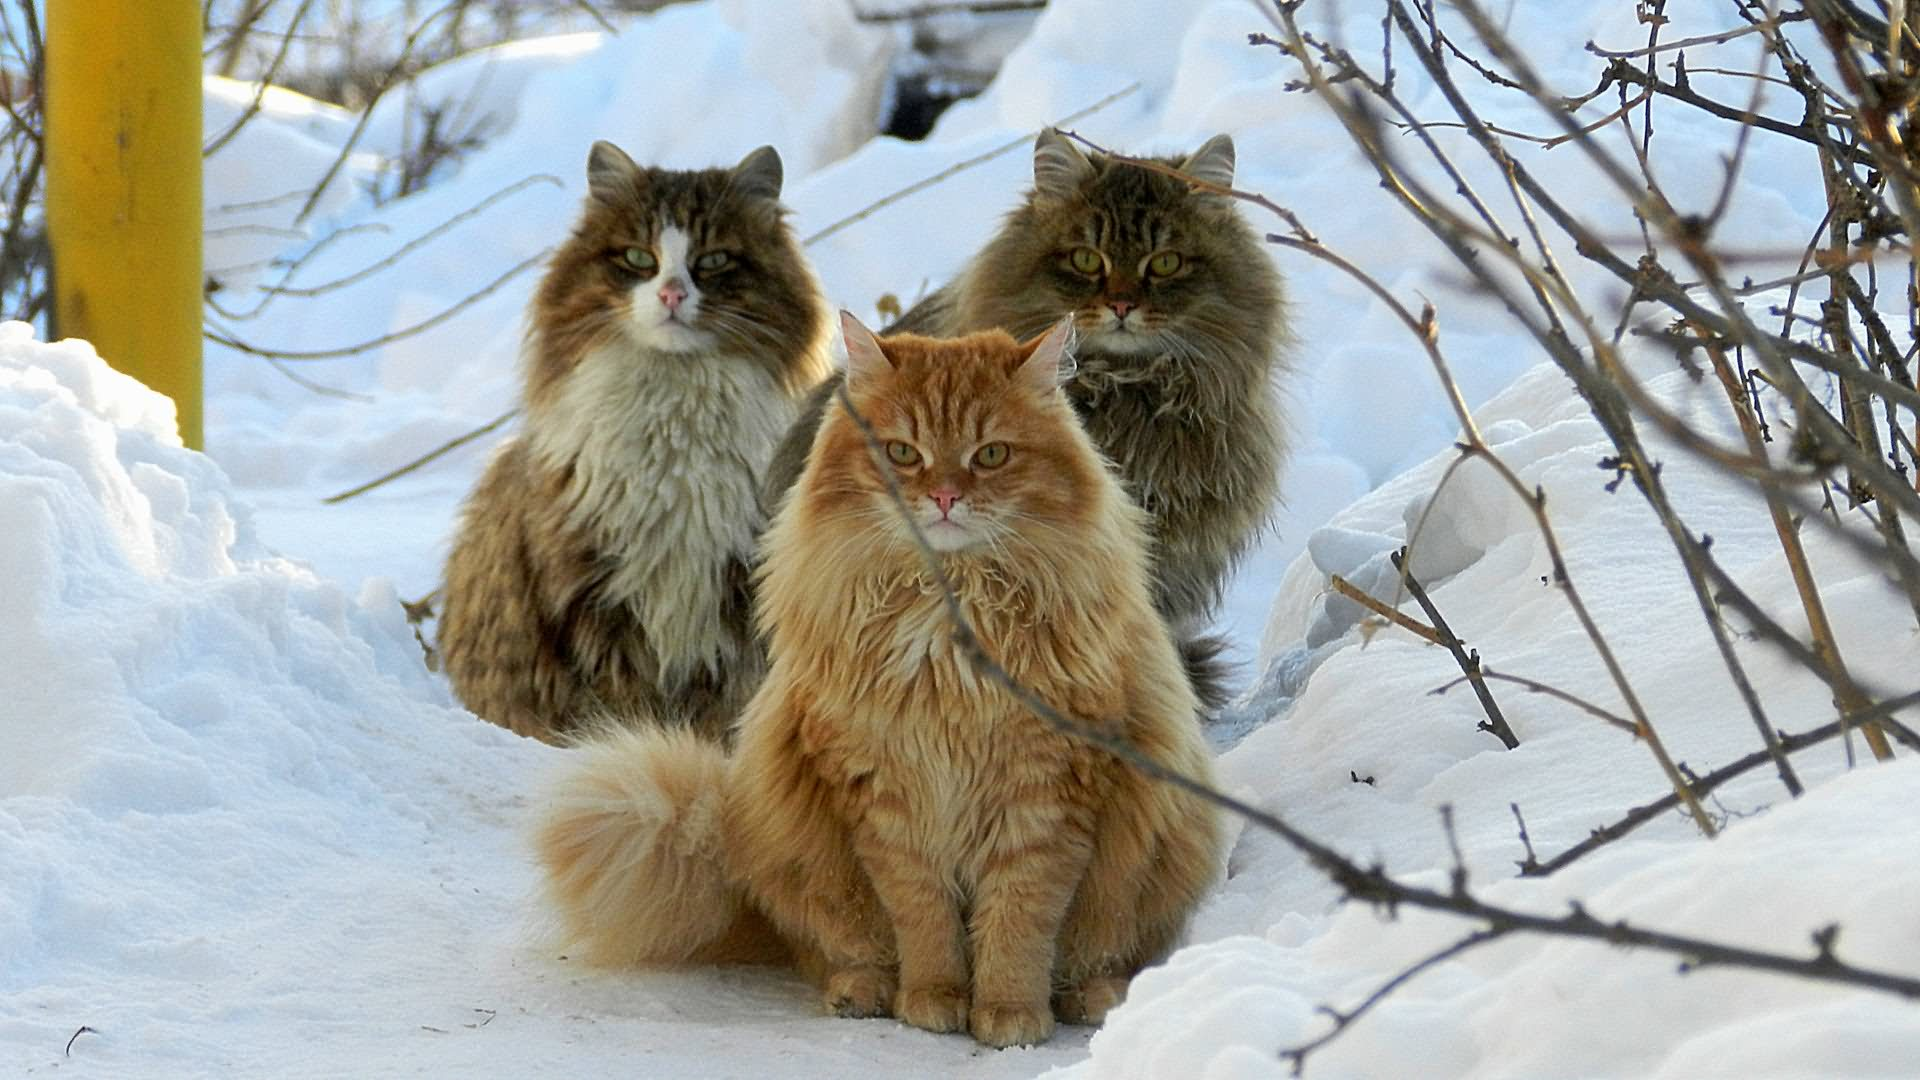 Cute Wallpapers Hd For Whatsapp 30 Most Wonderful Siberian Cat Pictures And Images